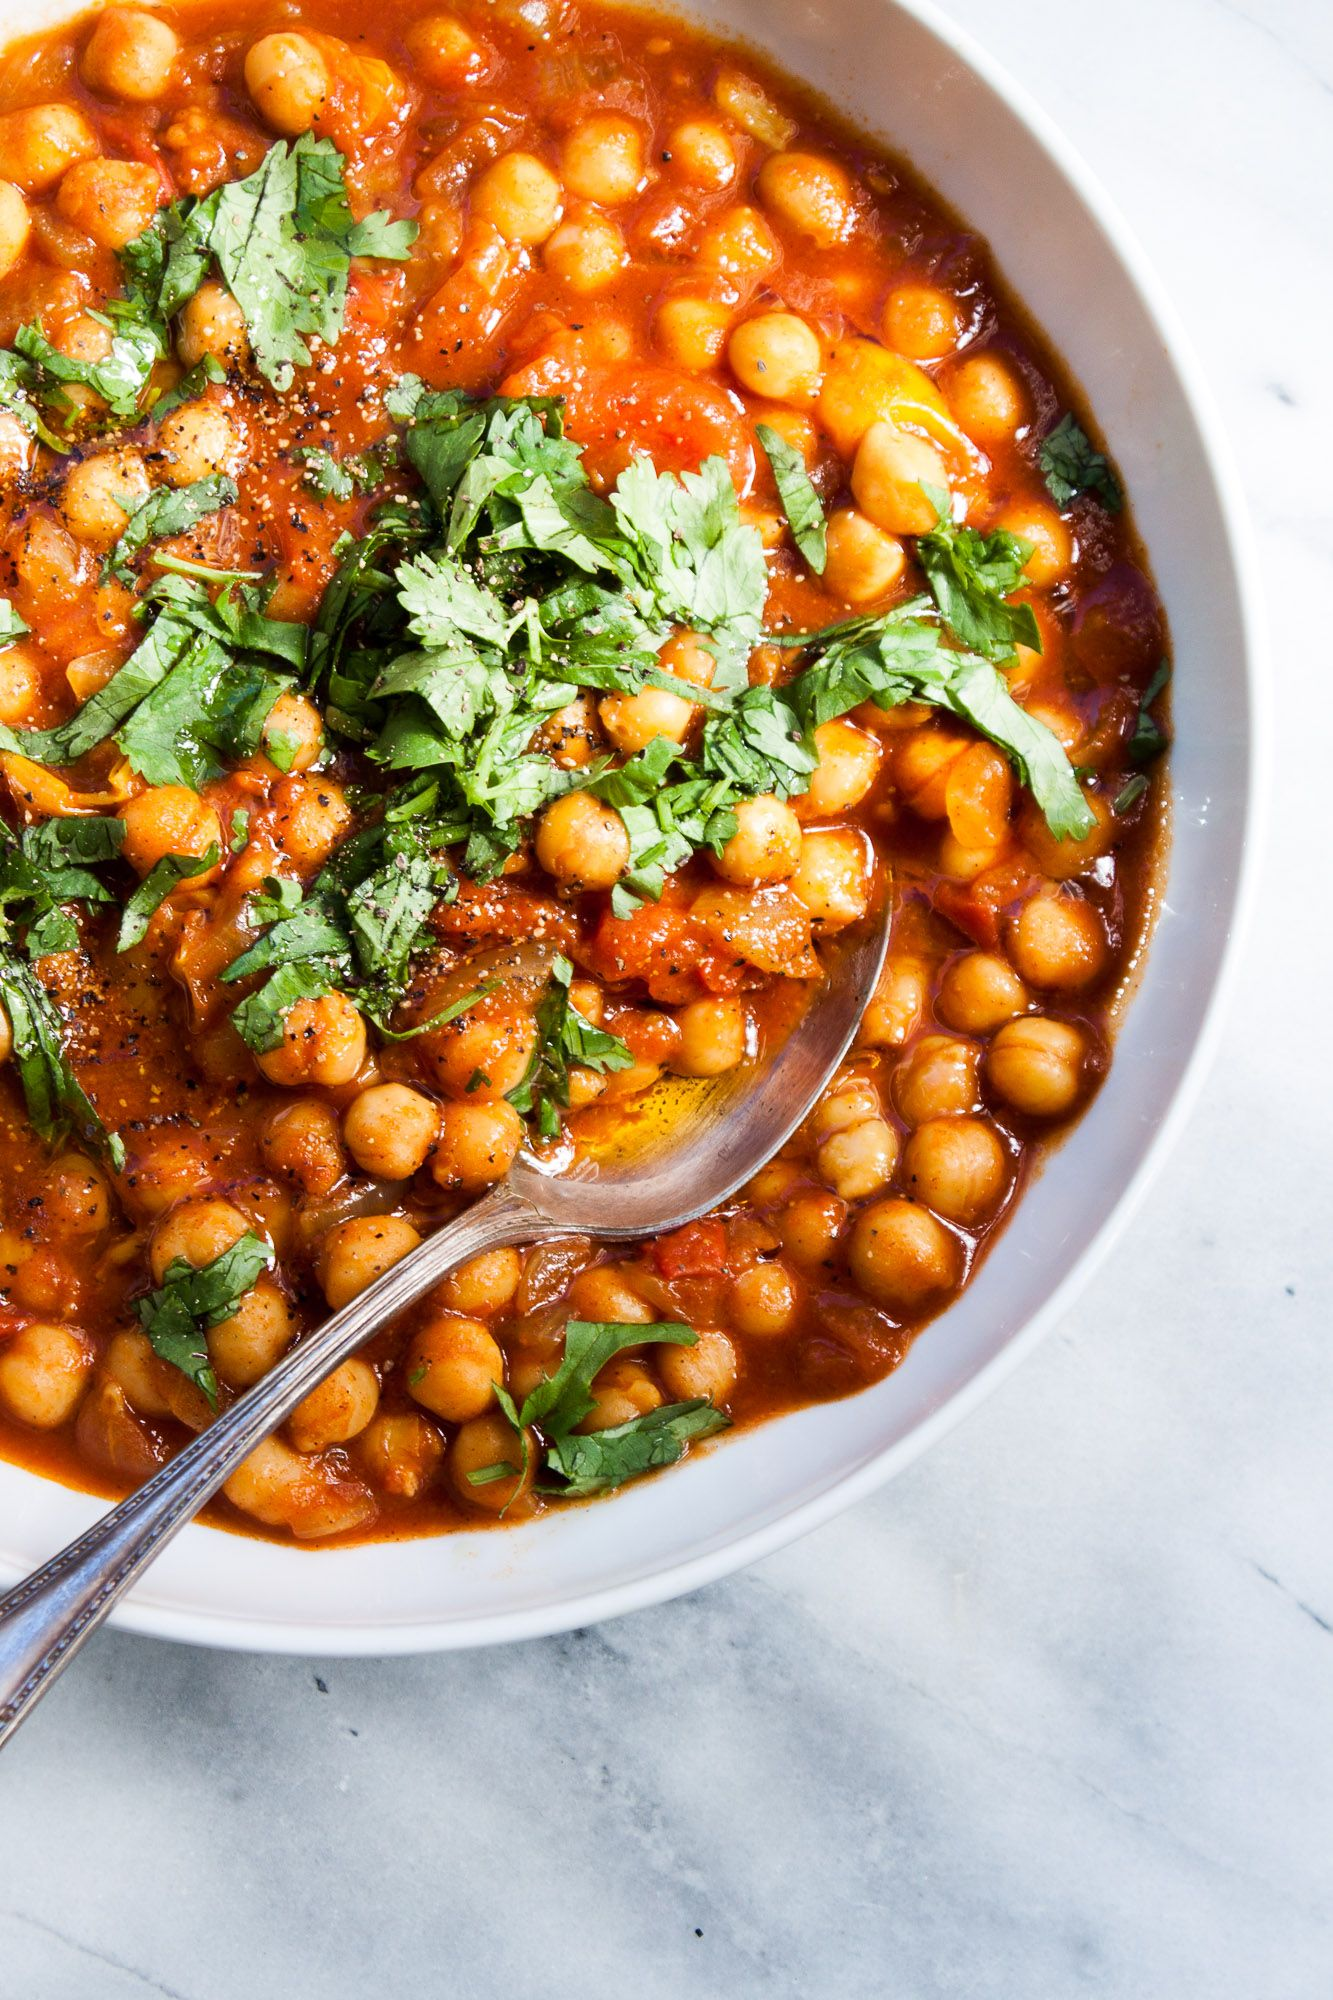 Moroccan Chickpea Tagine Food Tagine Recipes Tagine